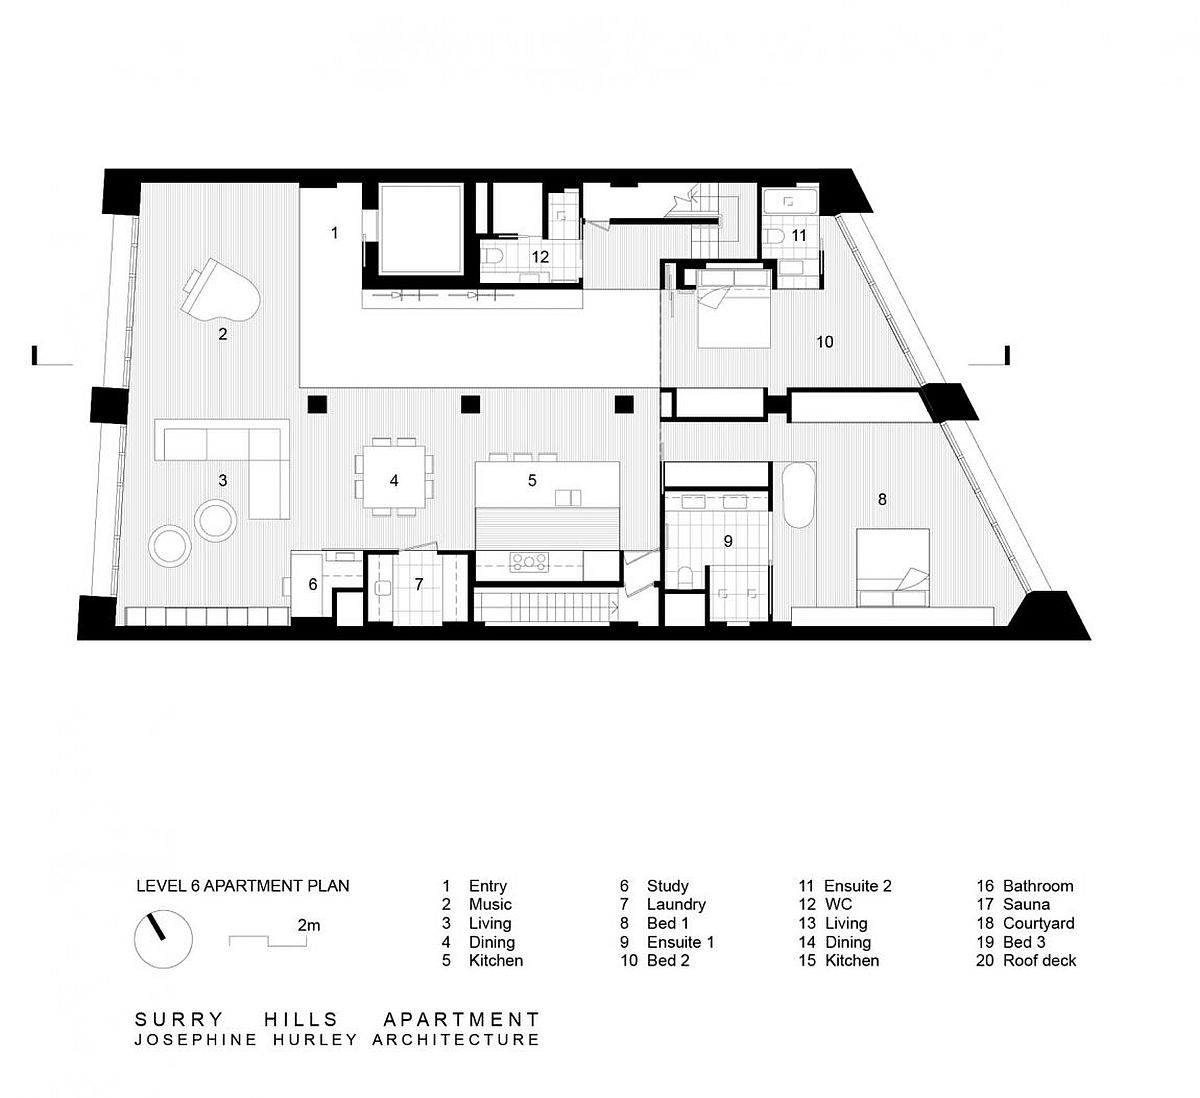 Floor plan of the lower level of the Surry Hills Apartment